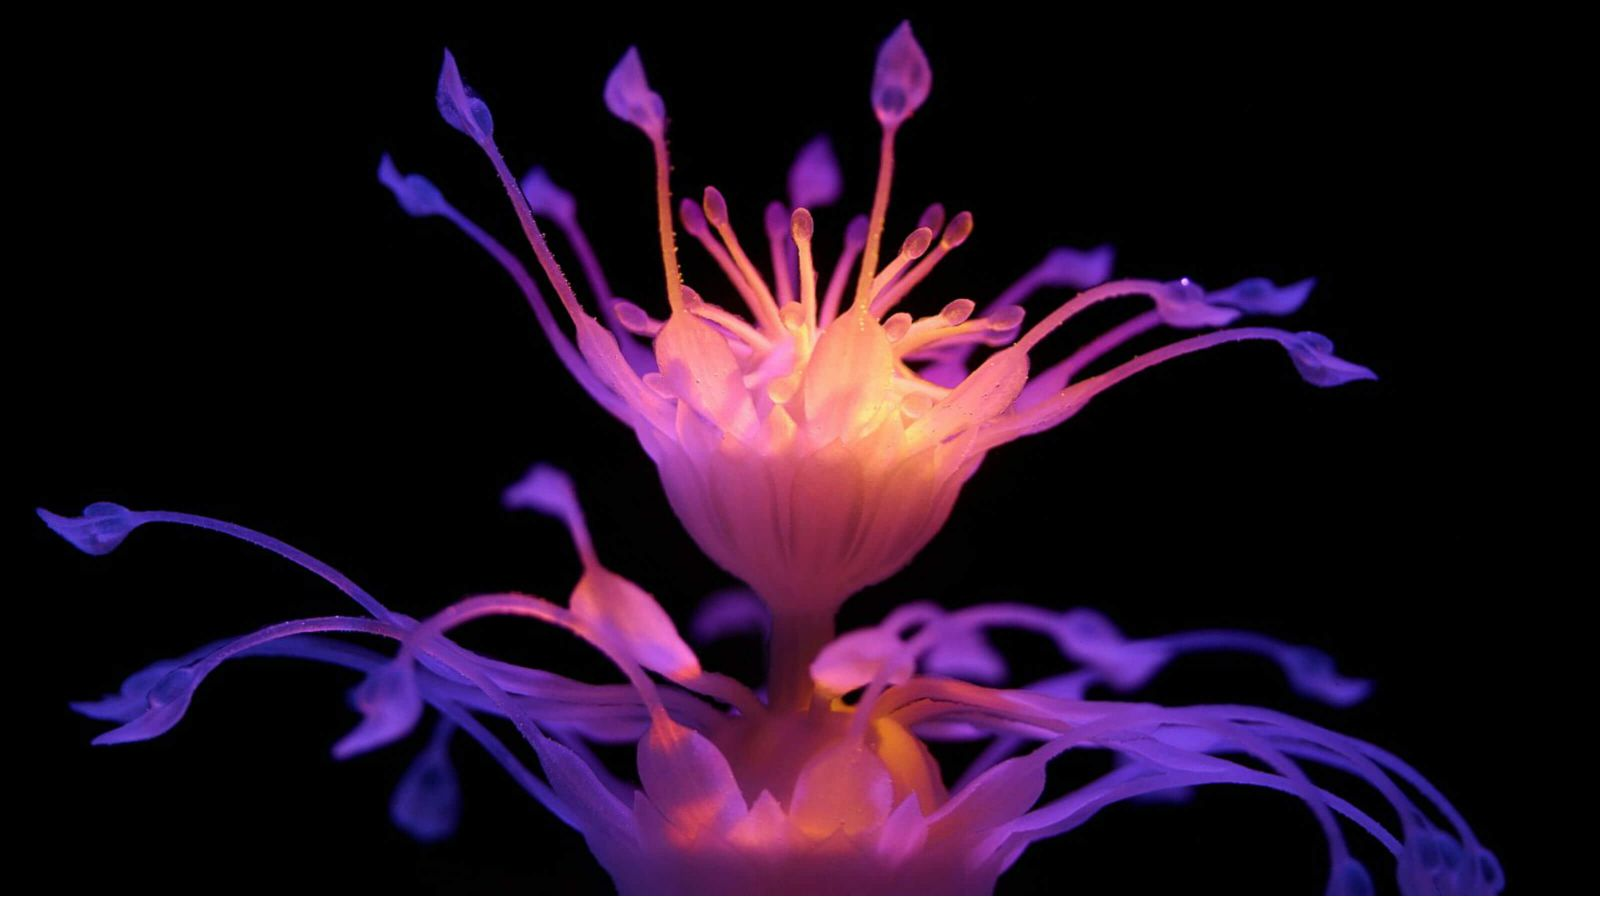 A four-dimensionally rendered and exotic-violet hydrophyte against a pitch black backdrop.